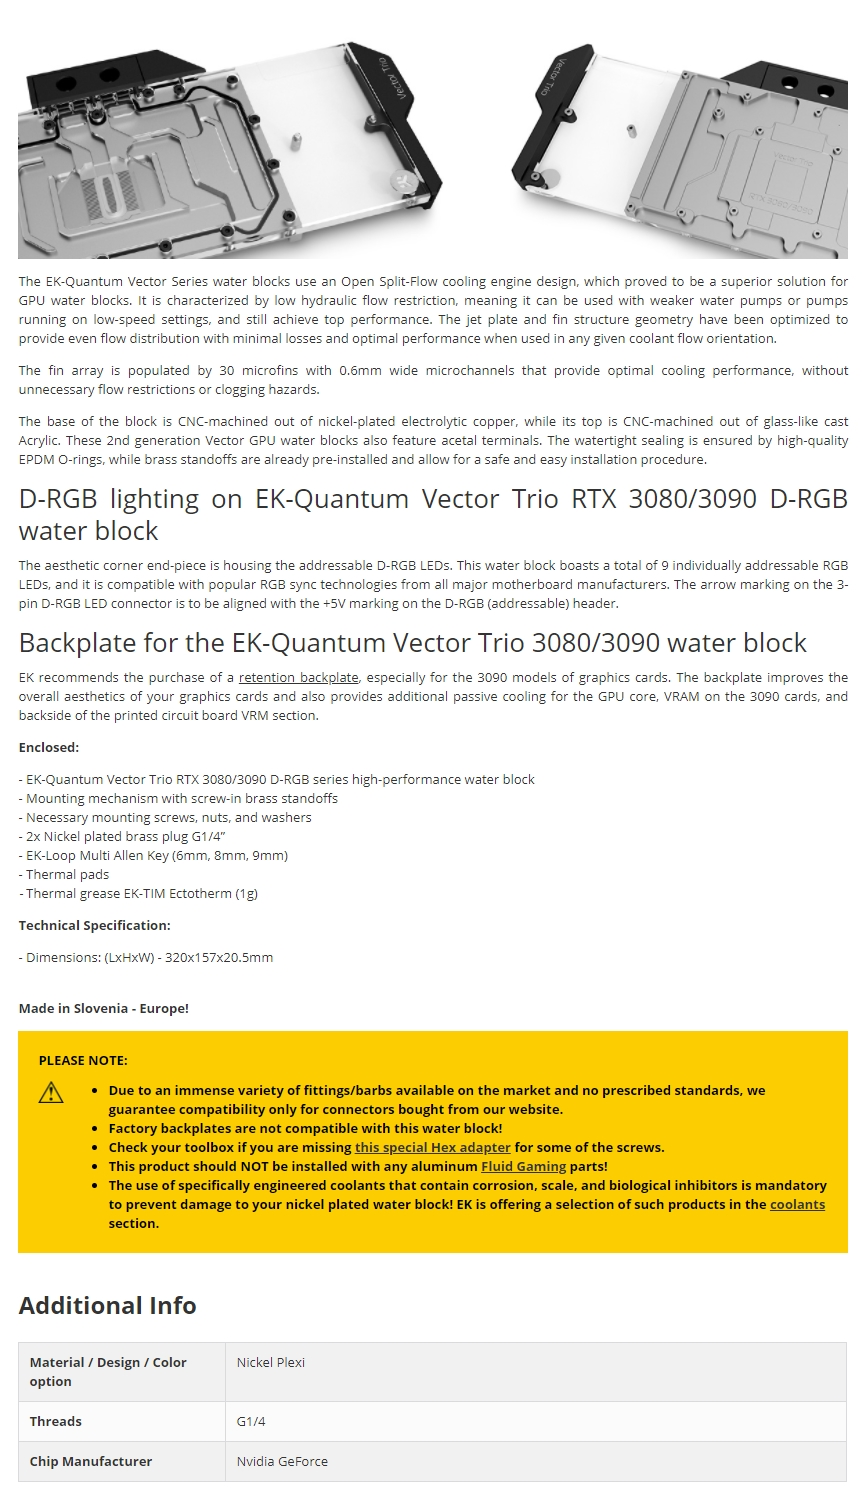 A large marketing image providing additional information about the product EK-Quantum Vector Trio RTX 3080/3090 D-RGB Nickel/ Plexi GPU Waterblock - Additional alt info not provided